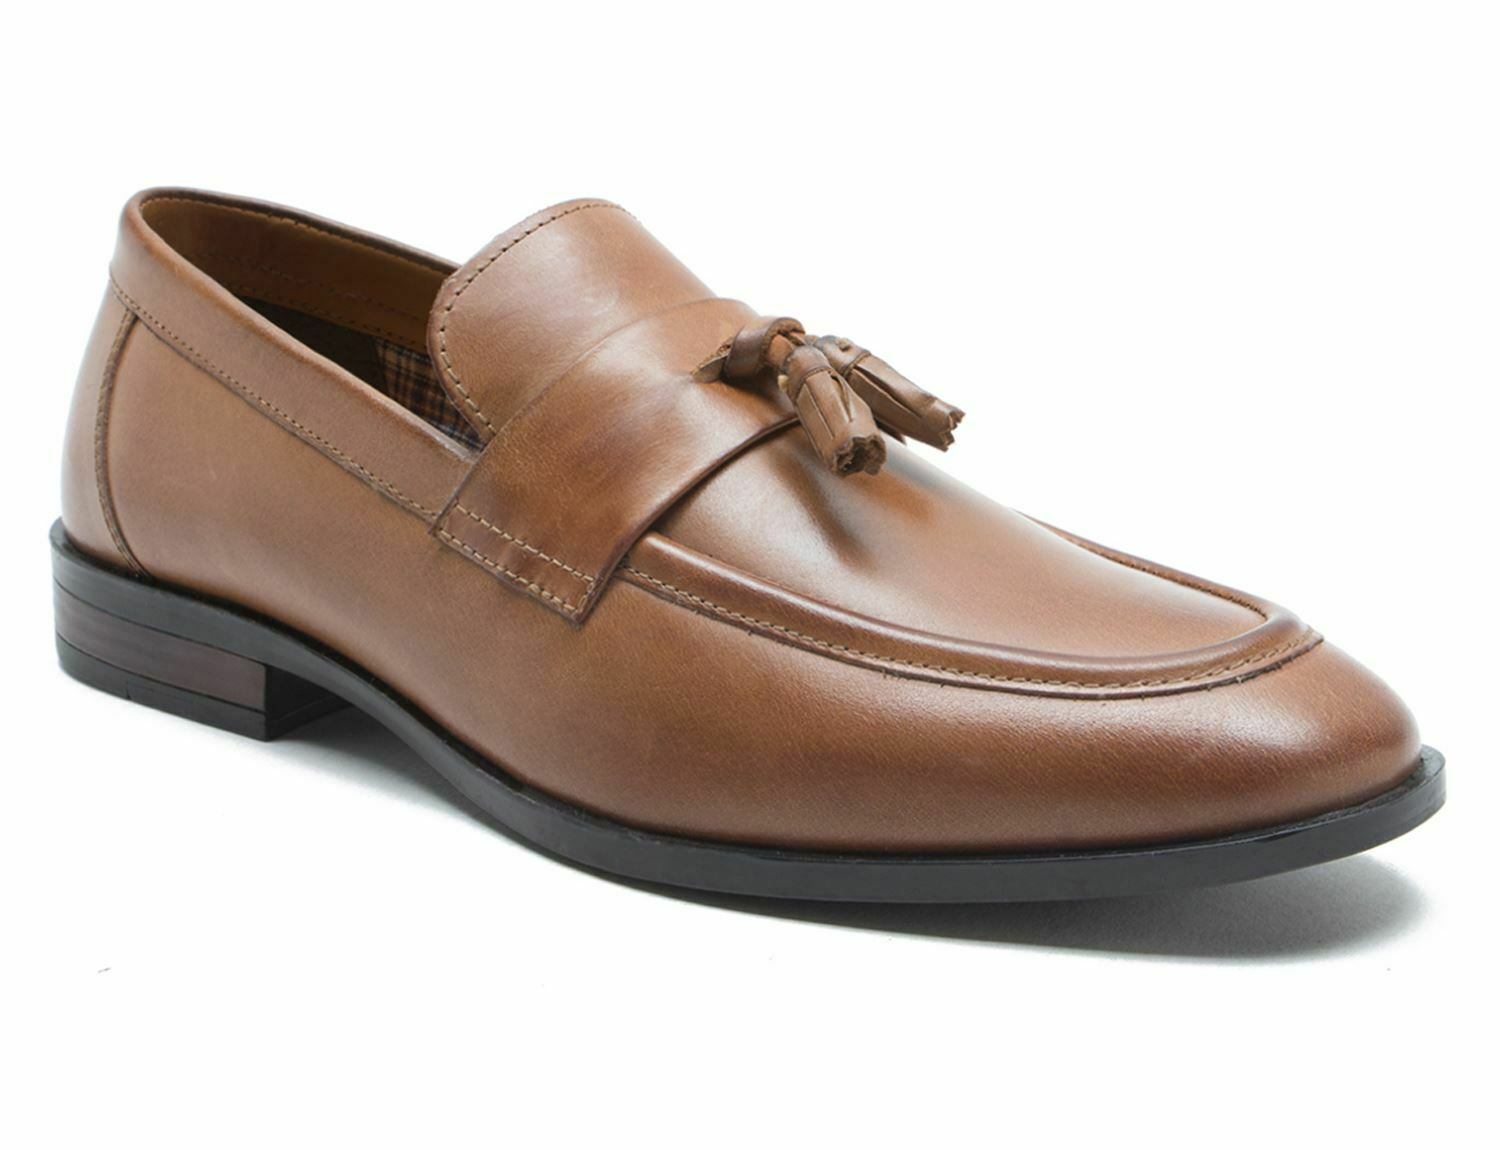 Red Tape Lumley Tan Leather Mens Tassled Loafers Free UK P&P